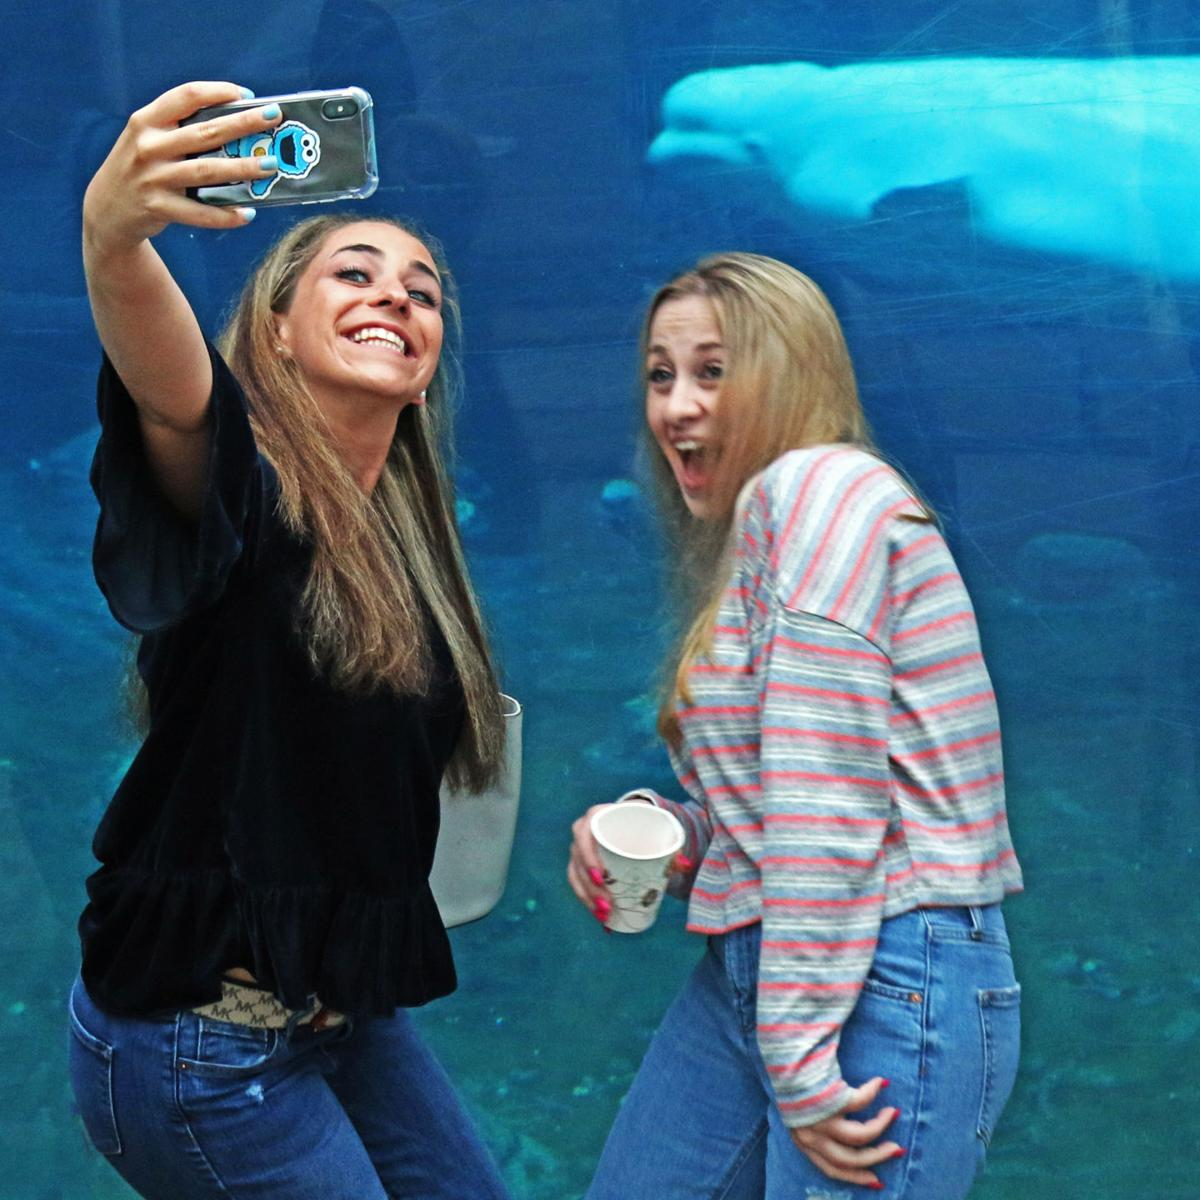 052419 MYS Cocktails with beluga whales 406.JPG